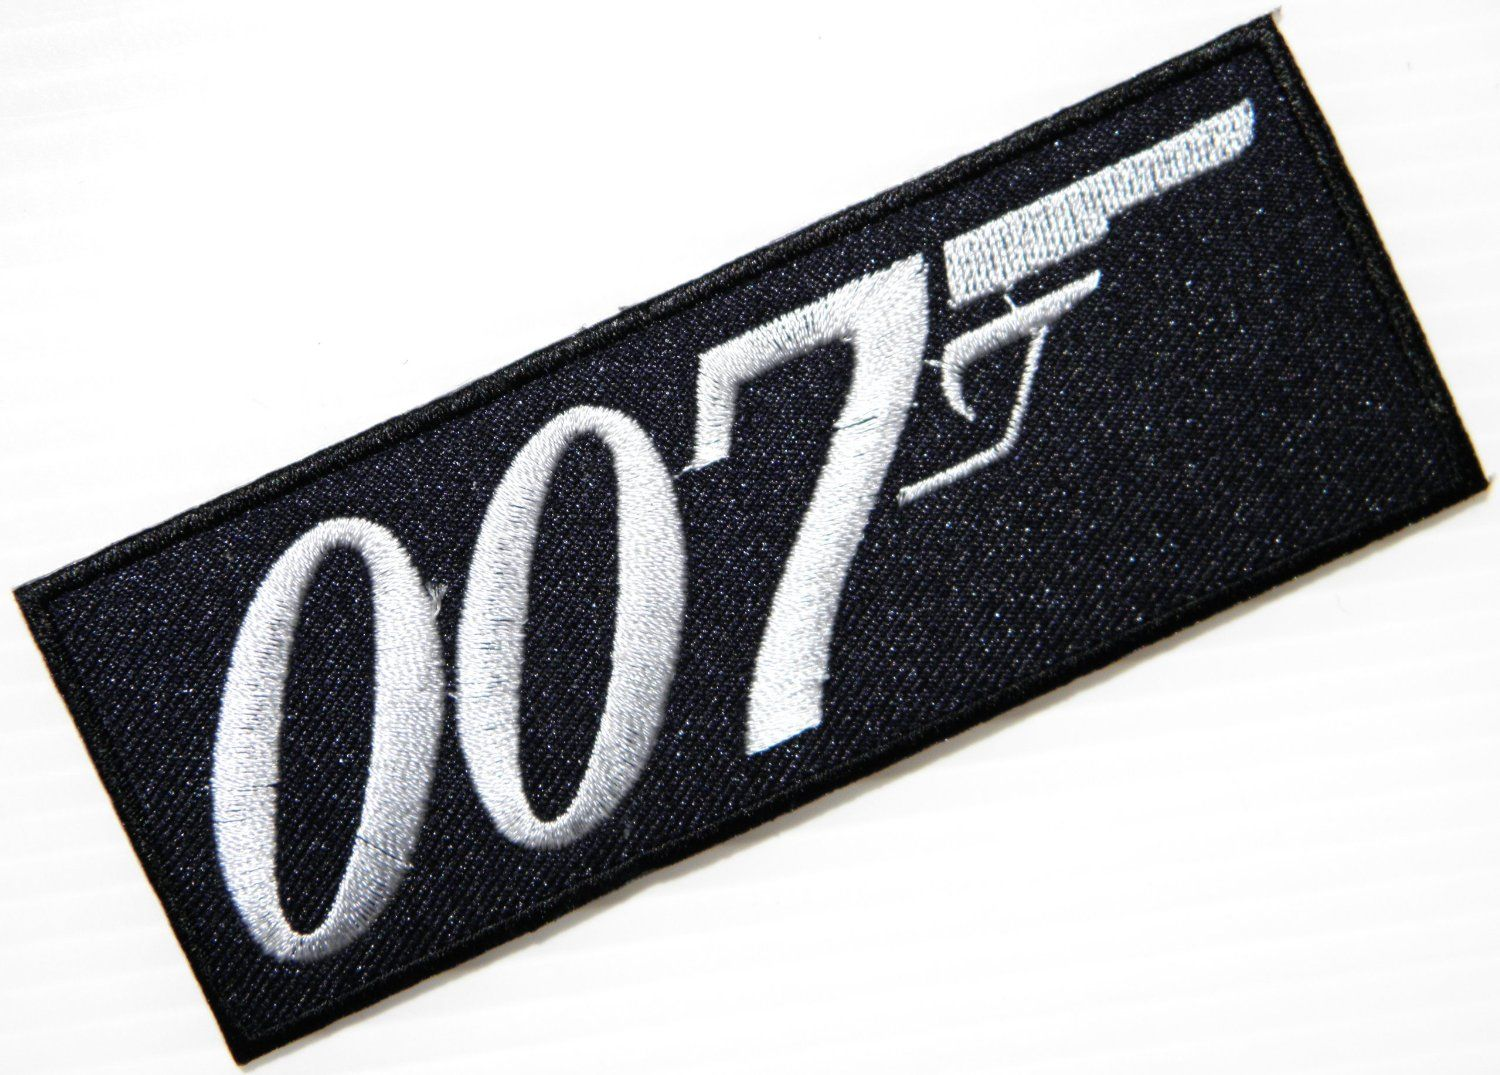 james bond 007 logo film jacke t shirt aufn her bestickt. Black Bedroom Furniture Sets. Home Design Ideas